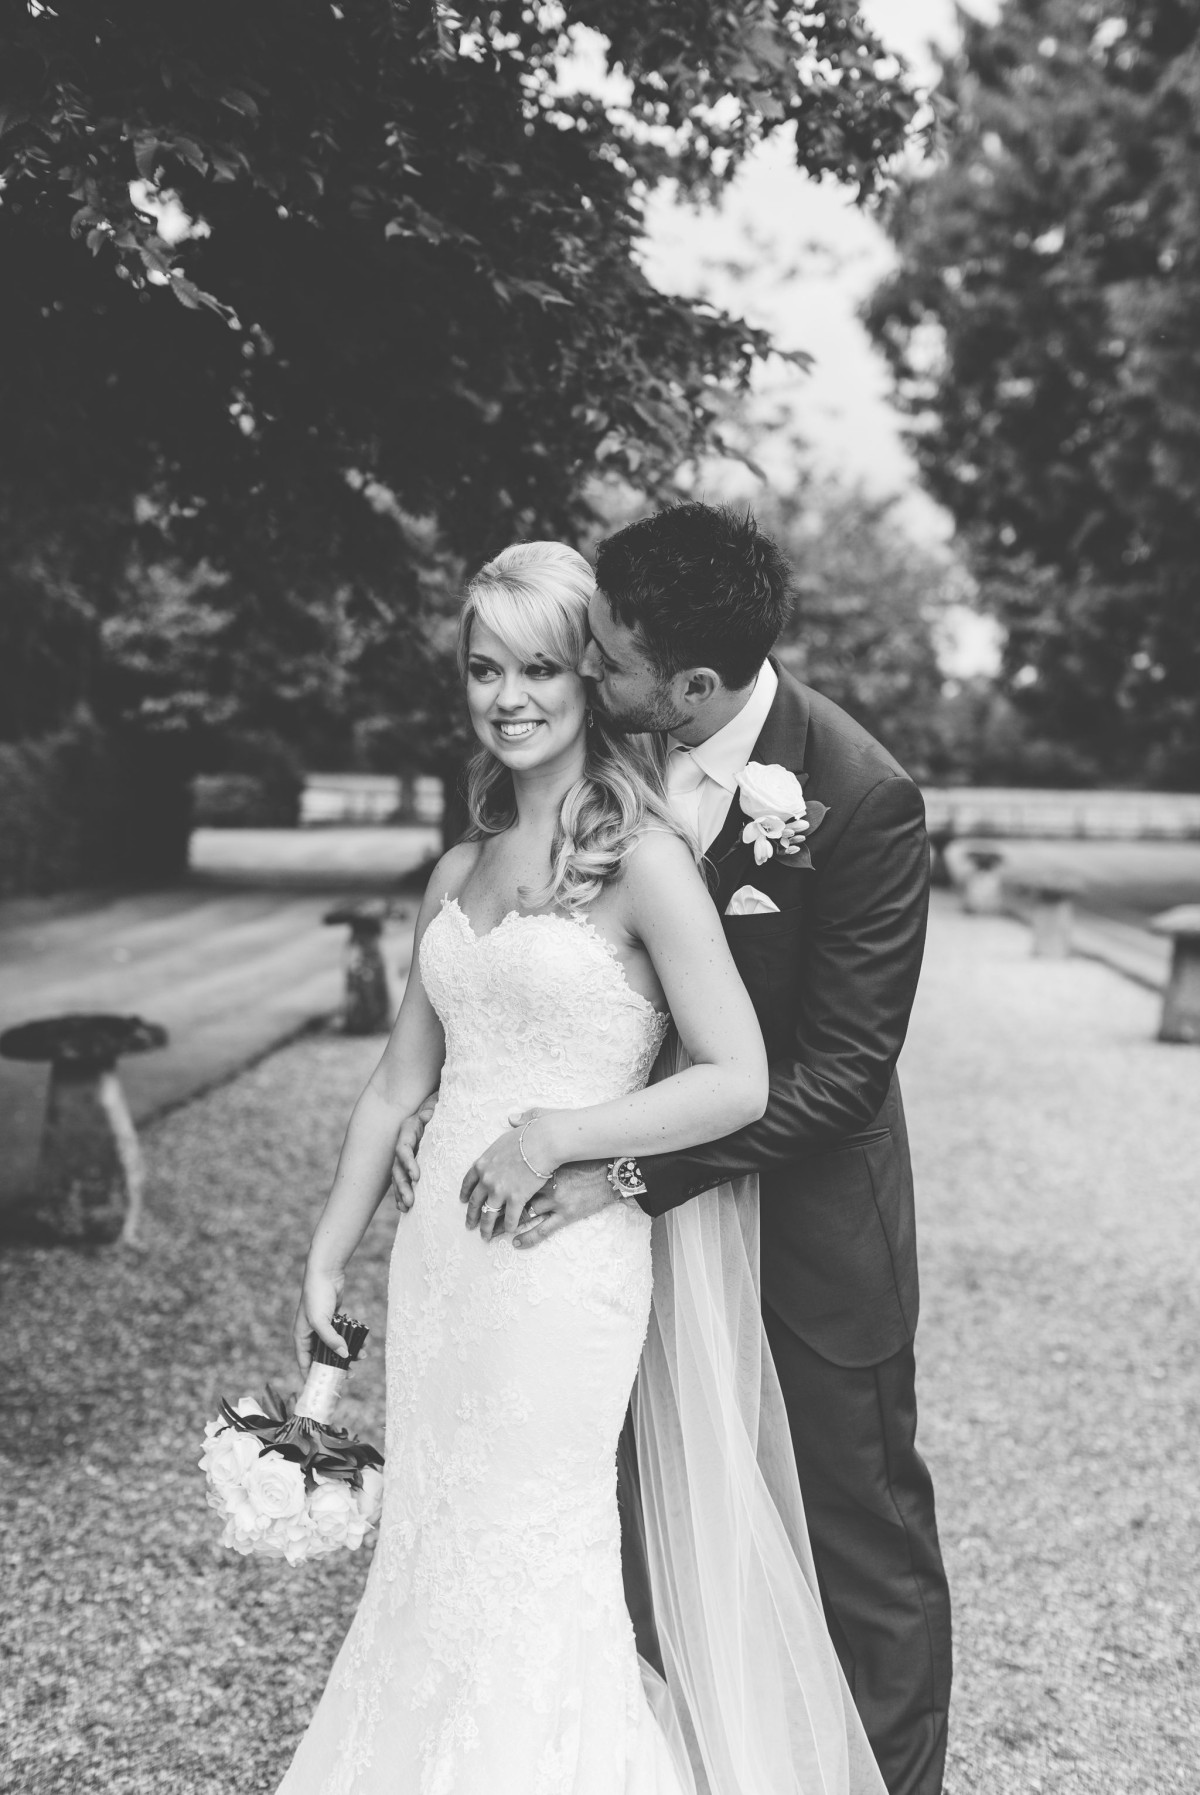 welsh_wedding_photographer_rachel_lambert_photography_lower_slaughter_manor_house_cotswolds_harriet_dean_ 33